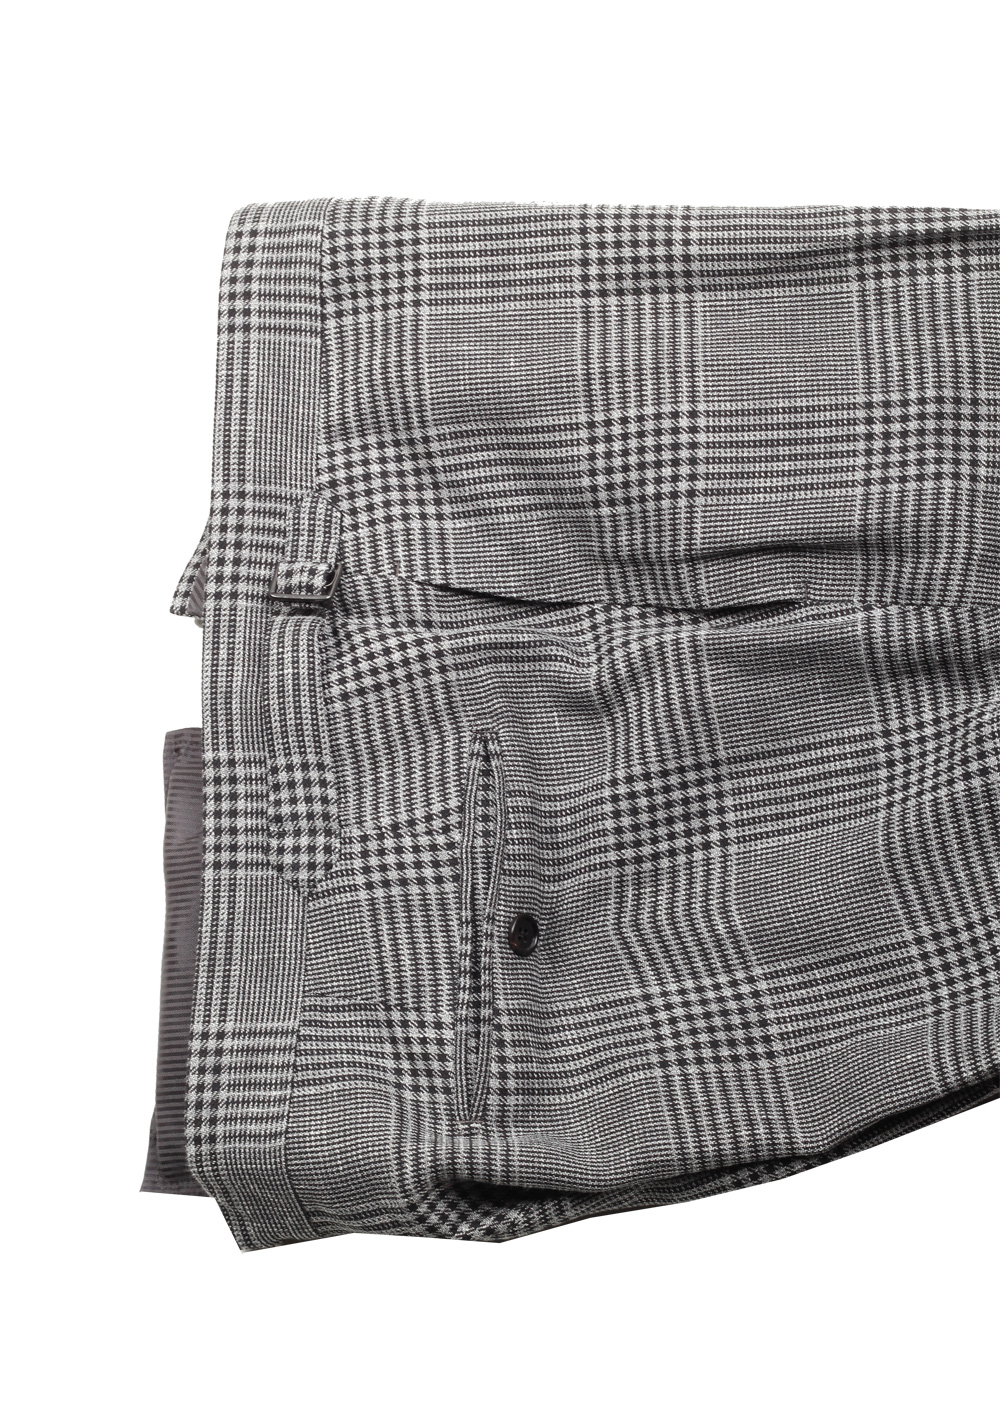 TOM FORD Shelton Checked Gray Suit Size 54 / 44R U.S. | Costume Limité